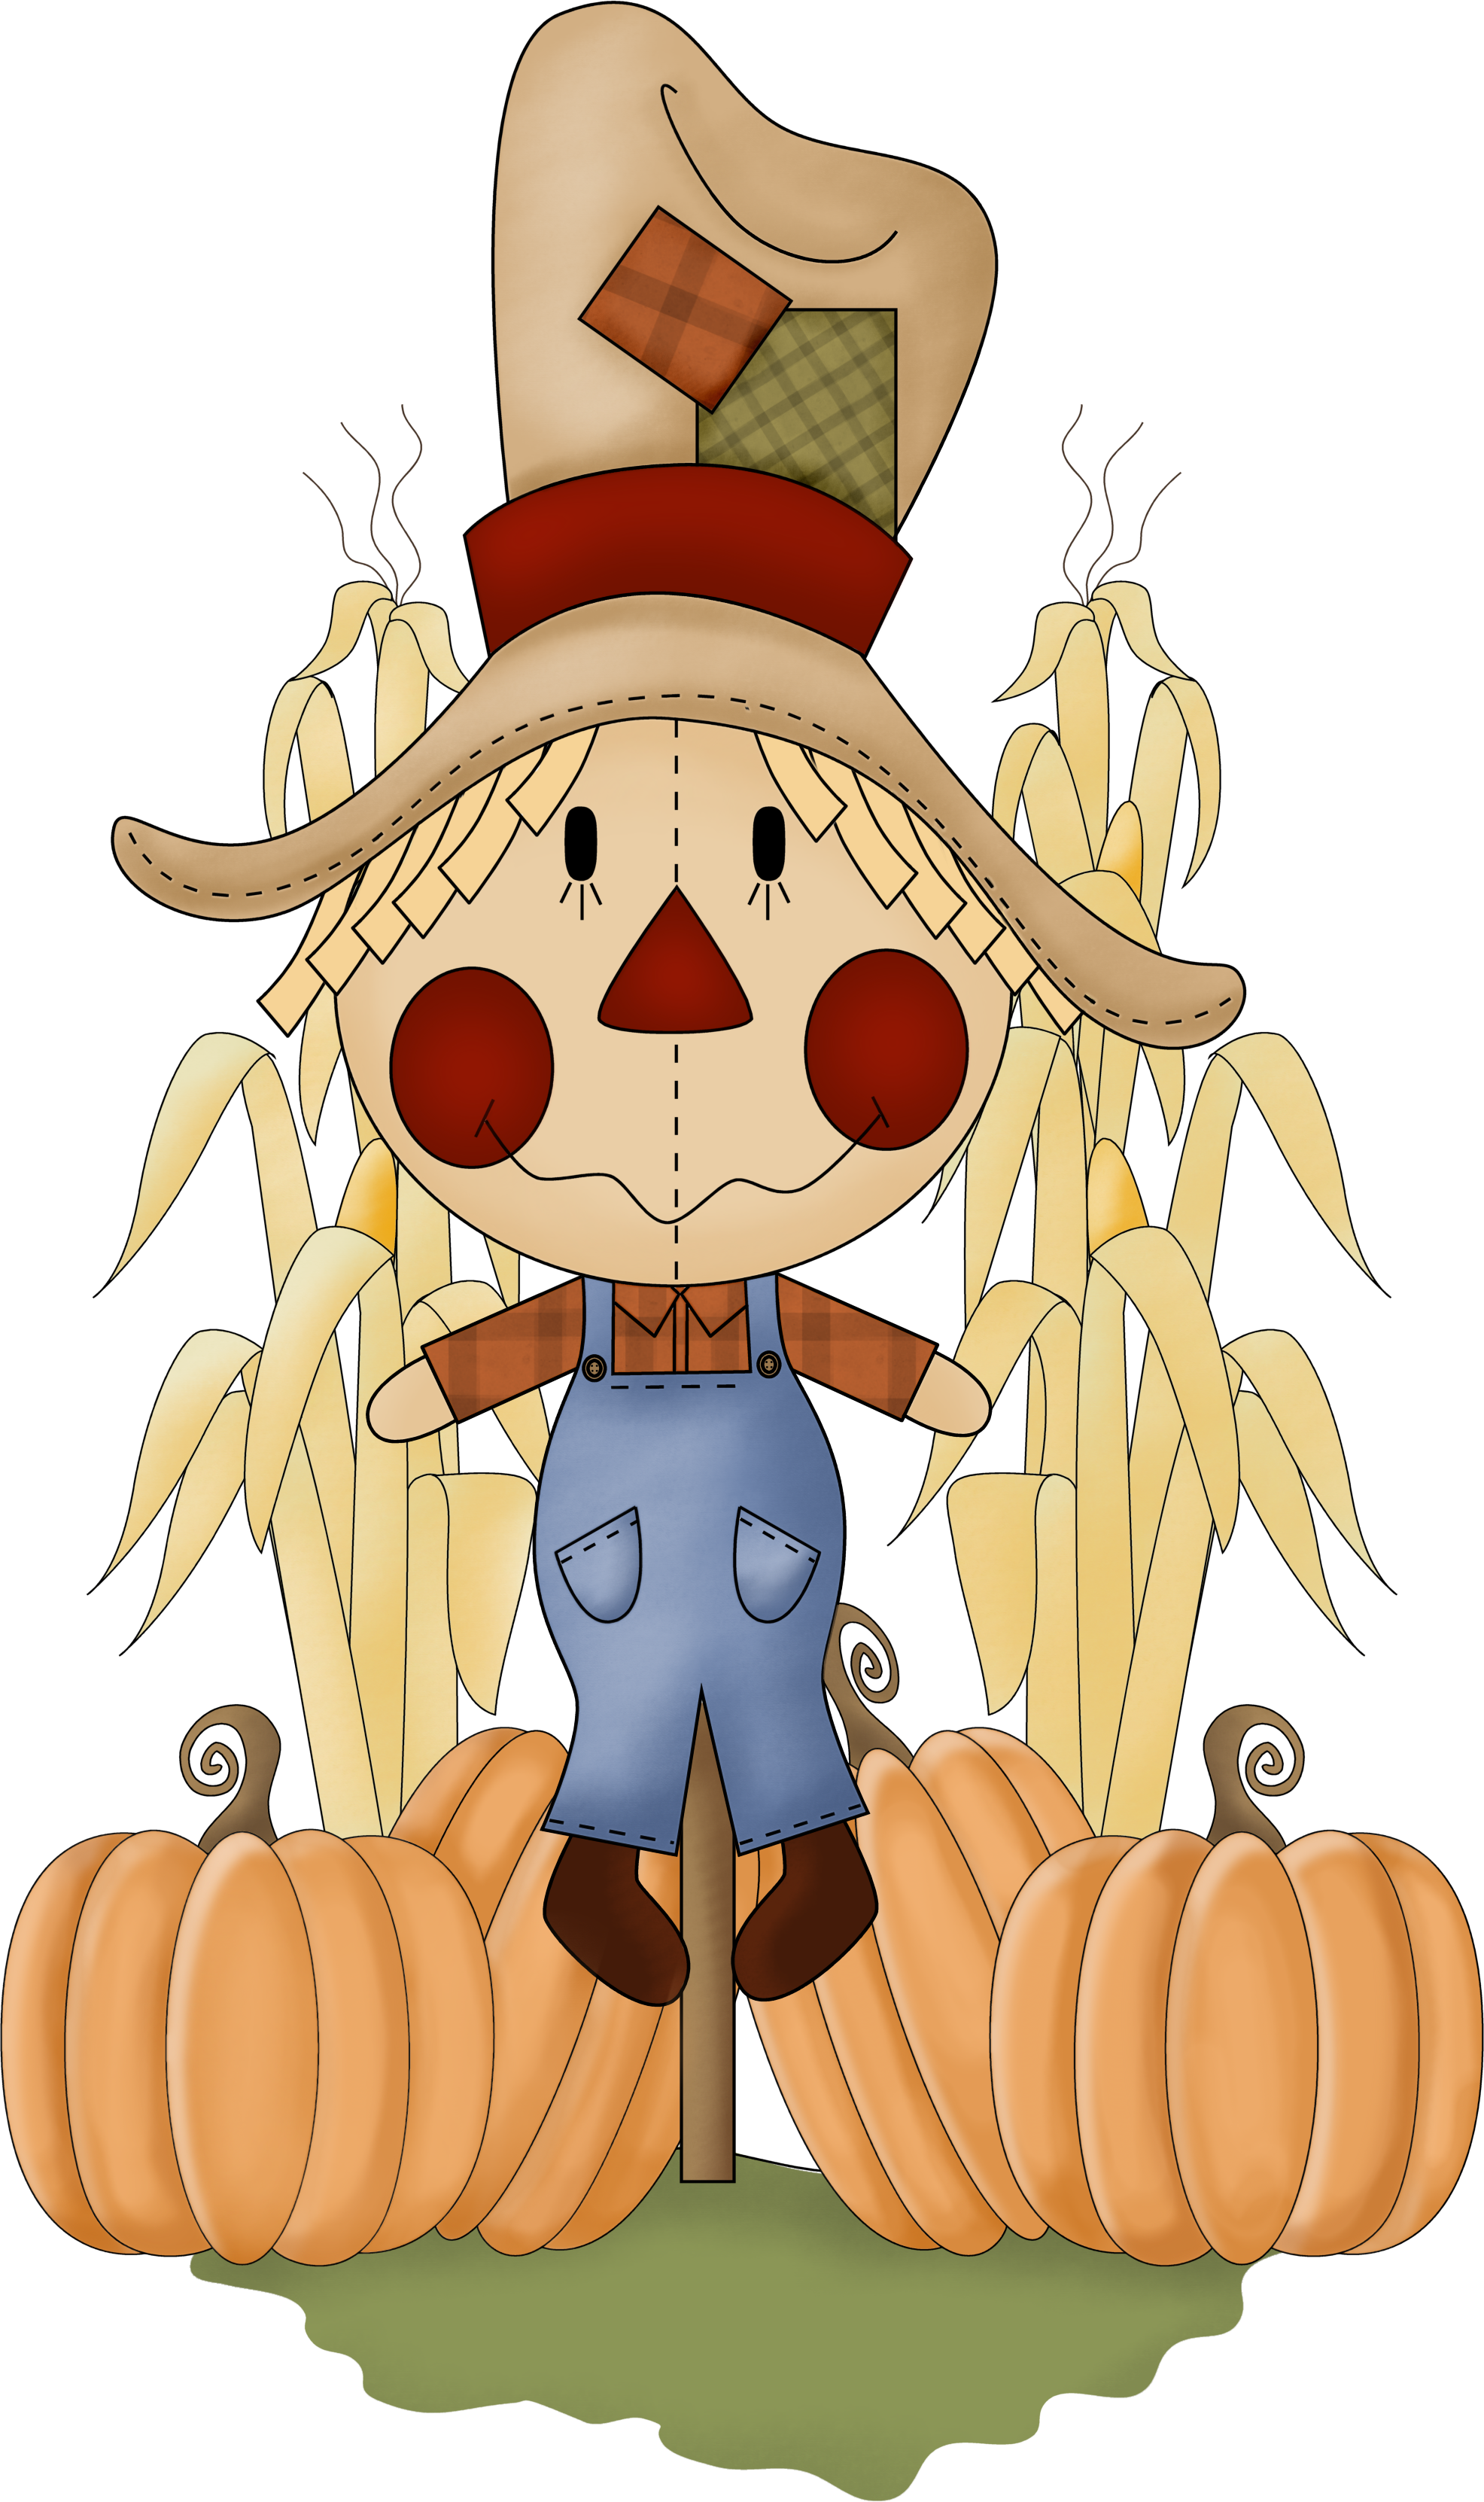 Cone thing for thanksgiving clipart image royalty free library SCARECROW * | CLIP ART - FALL / AUTUMN - CLIPART | Pinterest ... image royalty free library